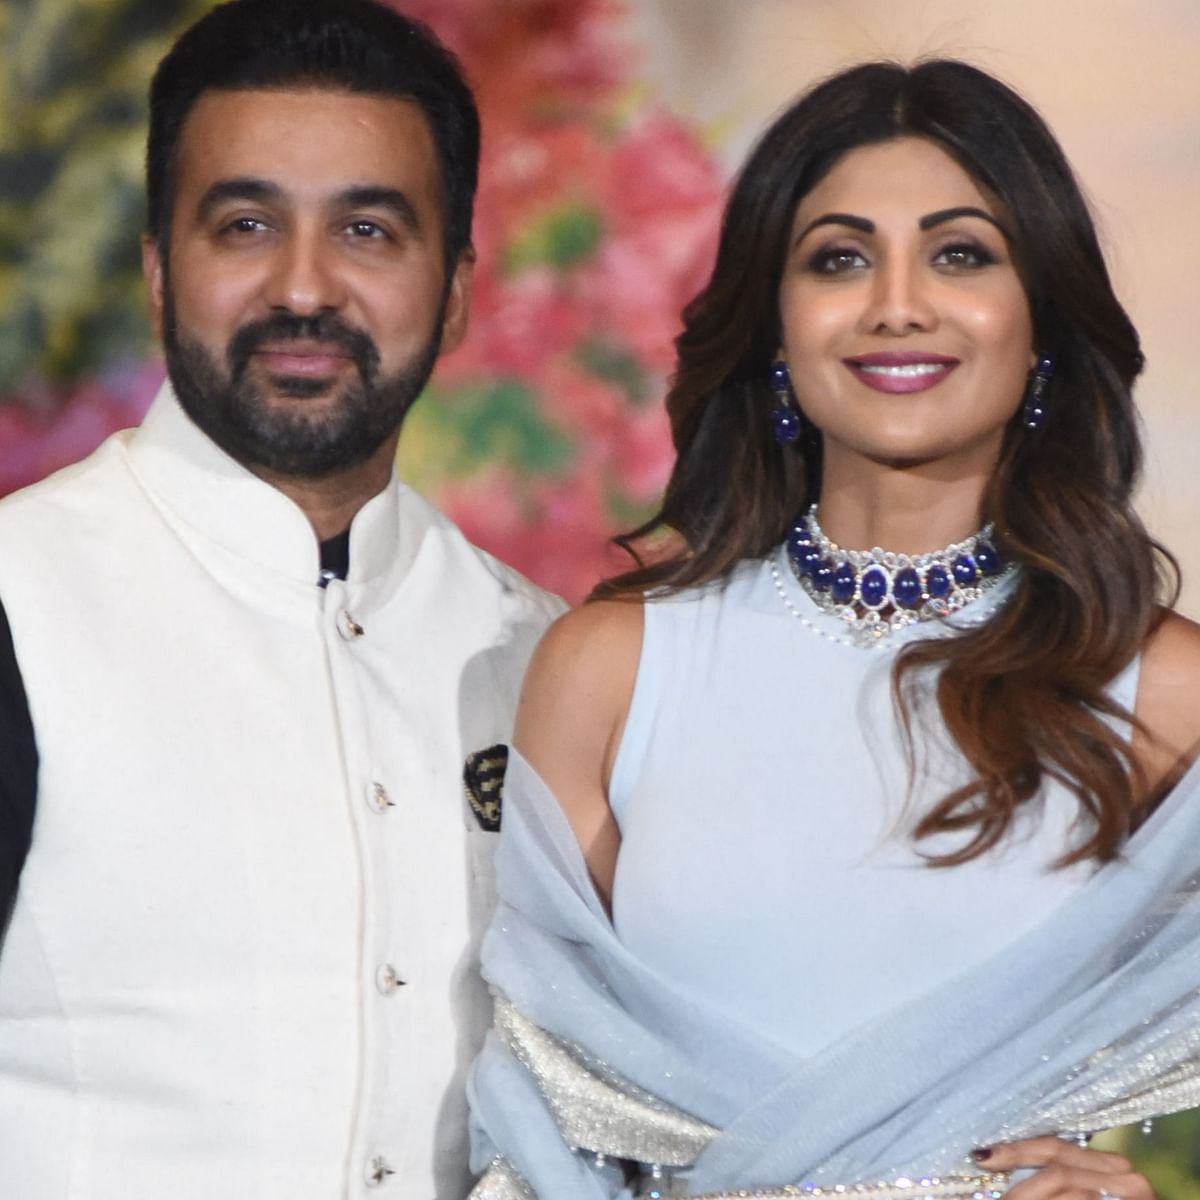 Porn Films Case: Shilpa Shetty shouted at Raj Kundra, asked him 'what was the need of doing such things'